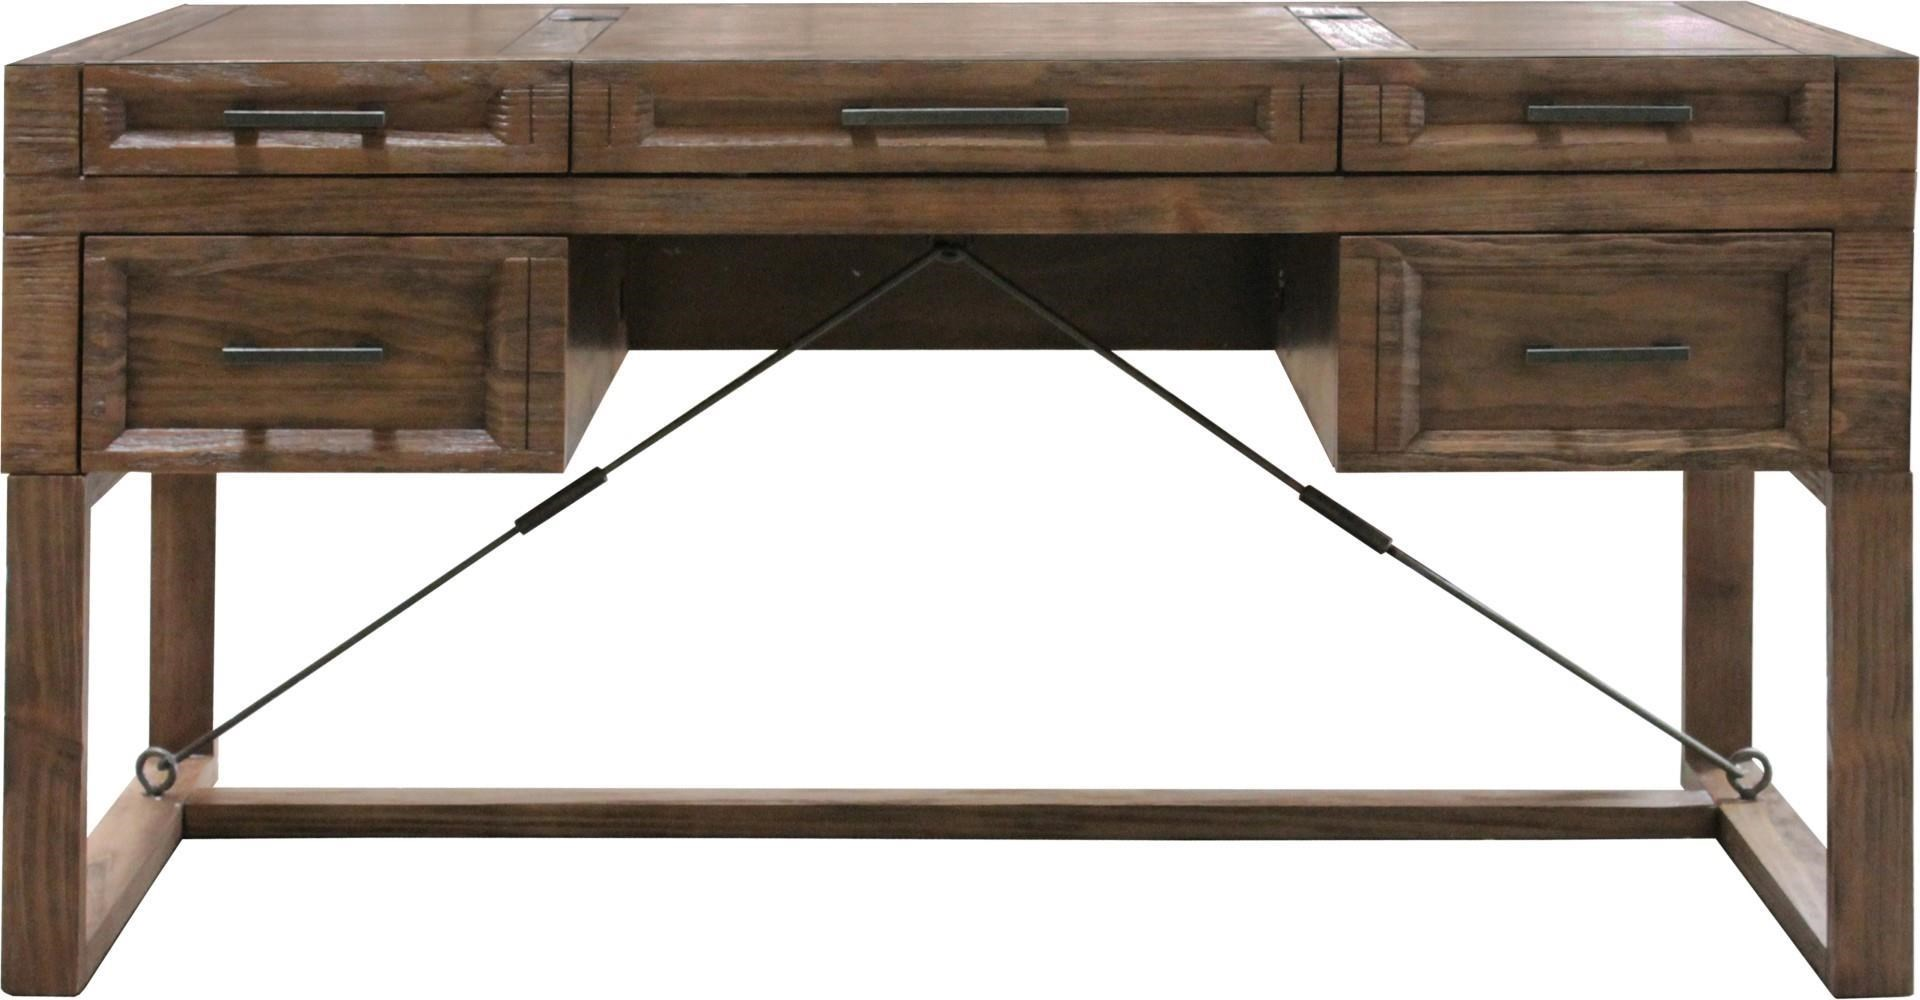 "Parker Scott Hickory Hills Hickory Hills 60"" Writing Desk - Item Number: 454476686"